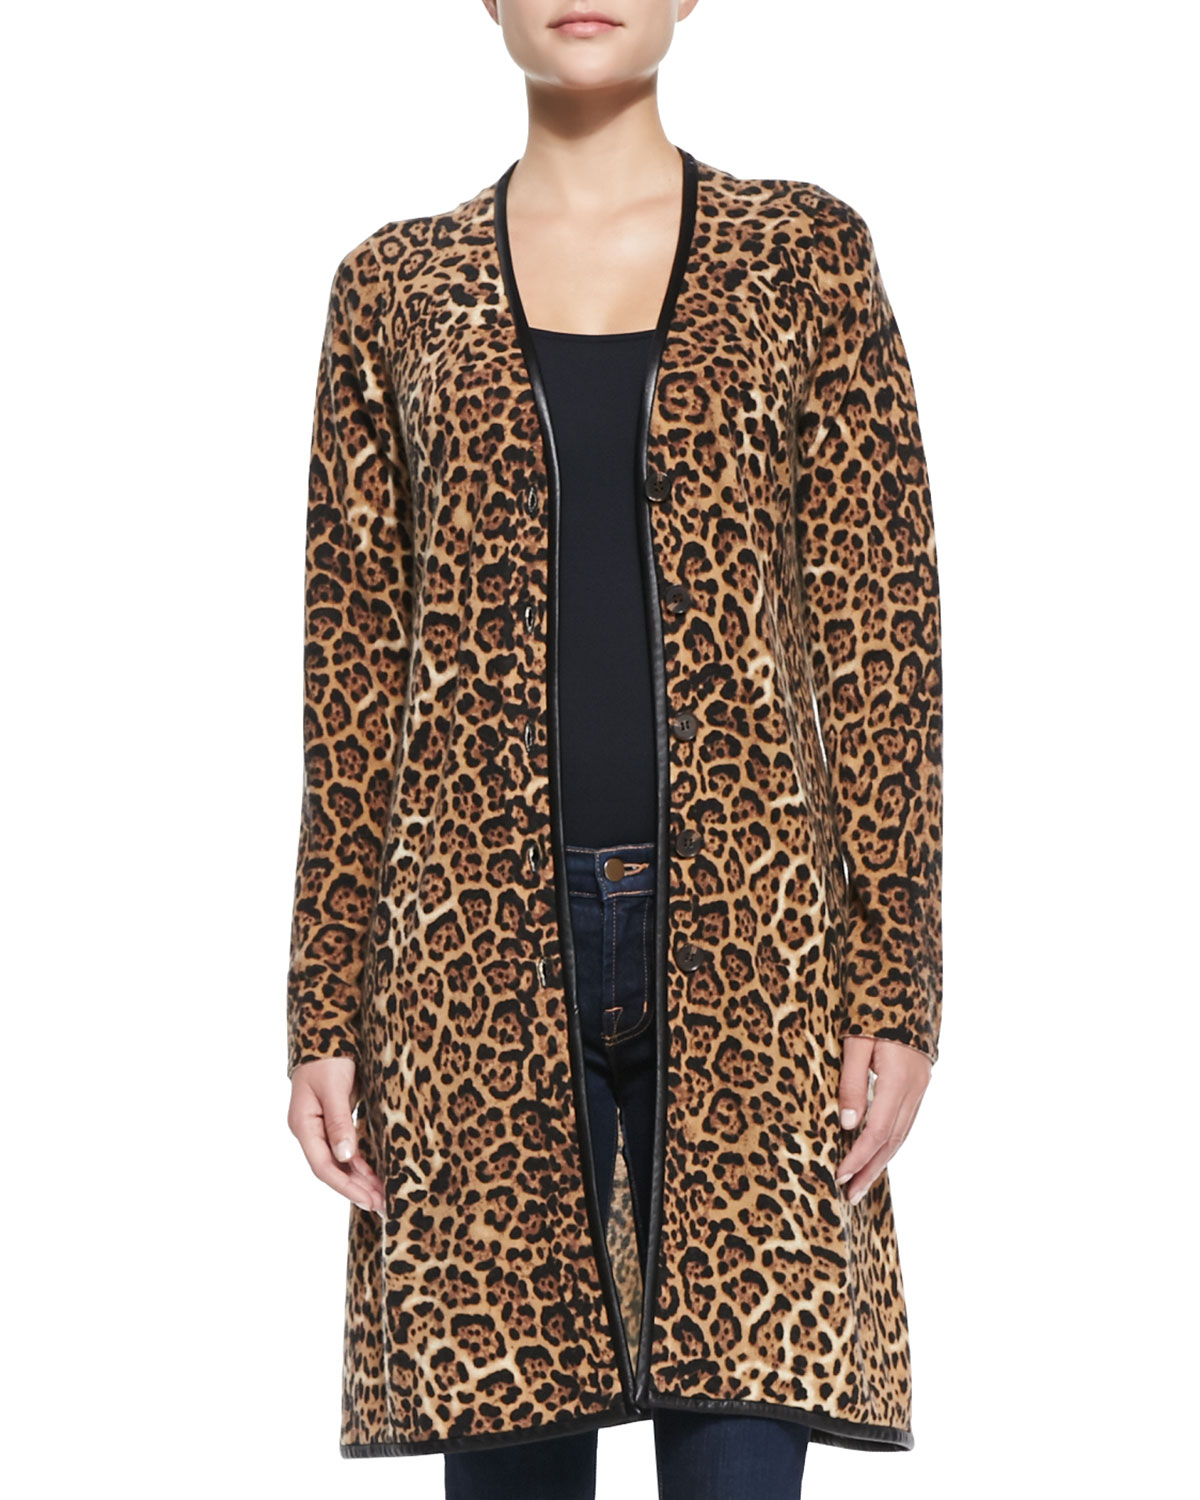 Kris Jenner Kollection 3/4 Sleeve Cheetah Print Cardigan 5 29 29 nice fit i really like what this cardigan does to a woman body it is slenderising but the only issue that i had was it had more of a muted color instead of a pop of color. but design level is how i like my prints unexpected/5(29).